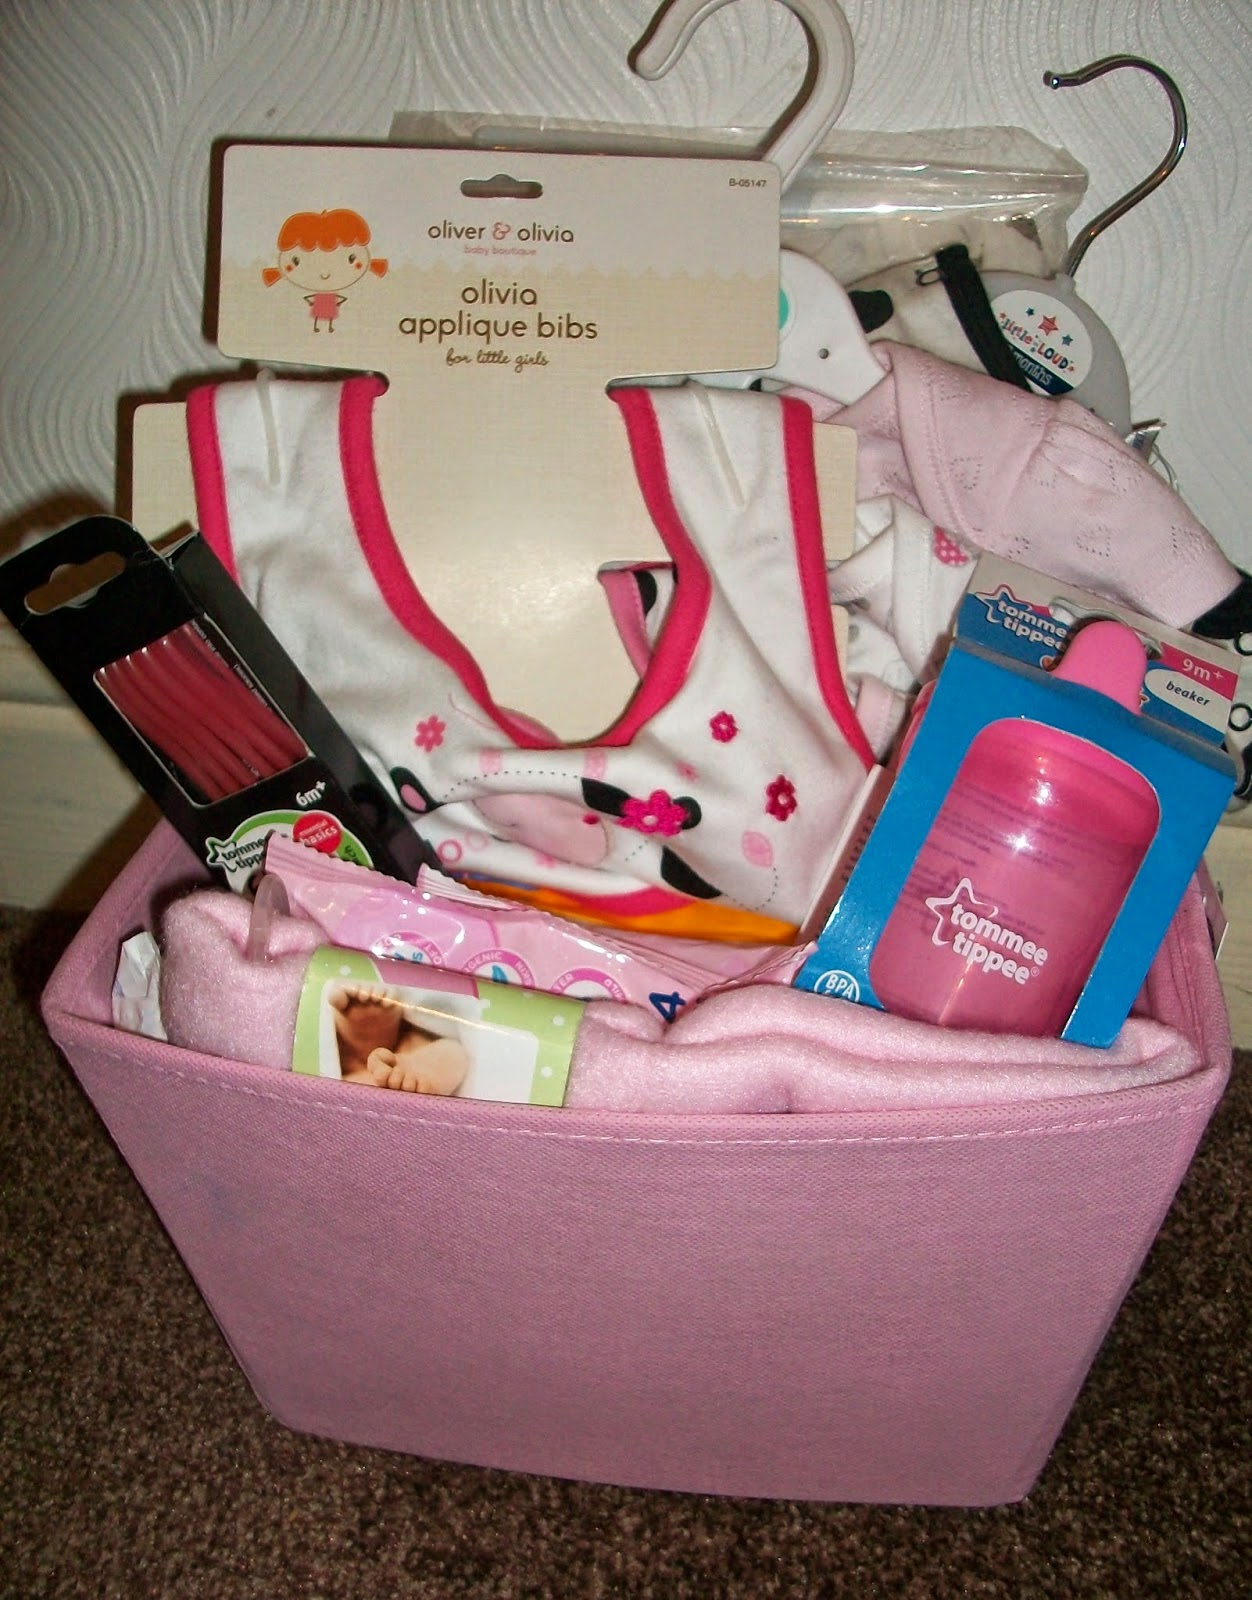 Baby Shower Gift List Ideas Uk : Zoe lianne beauty and lifestyle putting together a